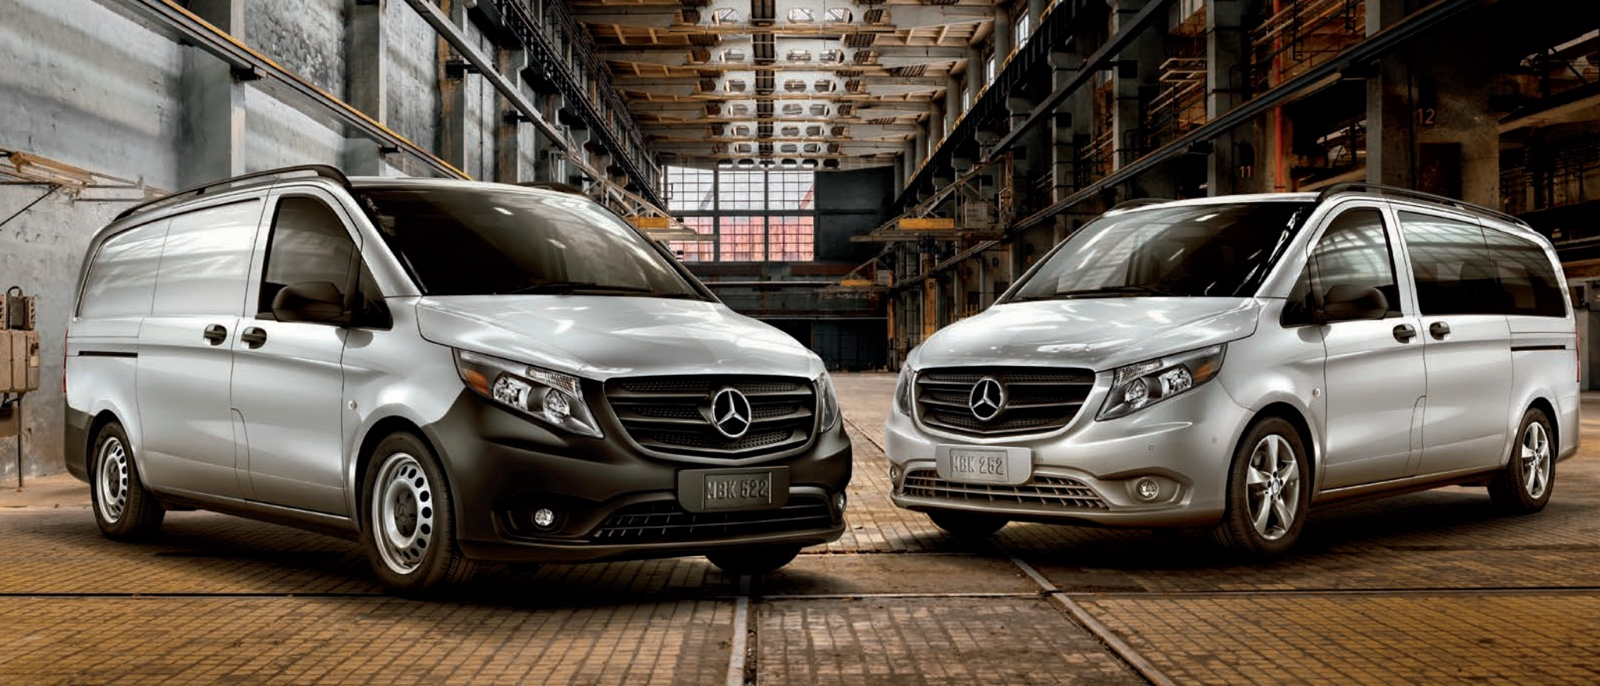 New mercedes benz metris mercedes benz of rocklin for Mercedes benz rocklin service